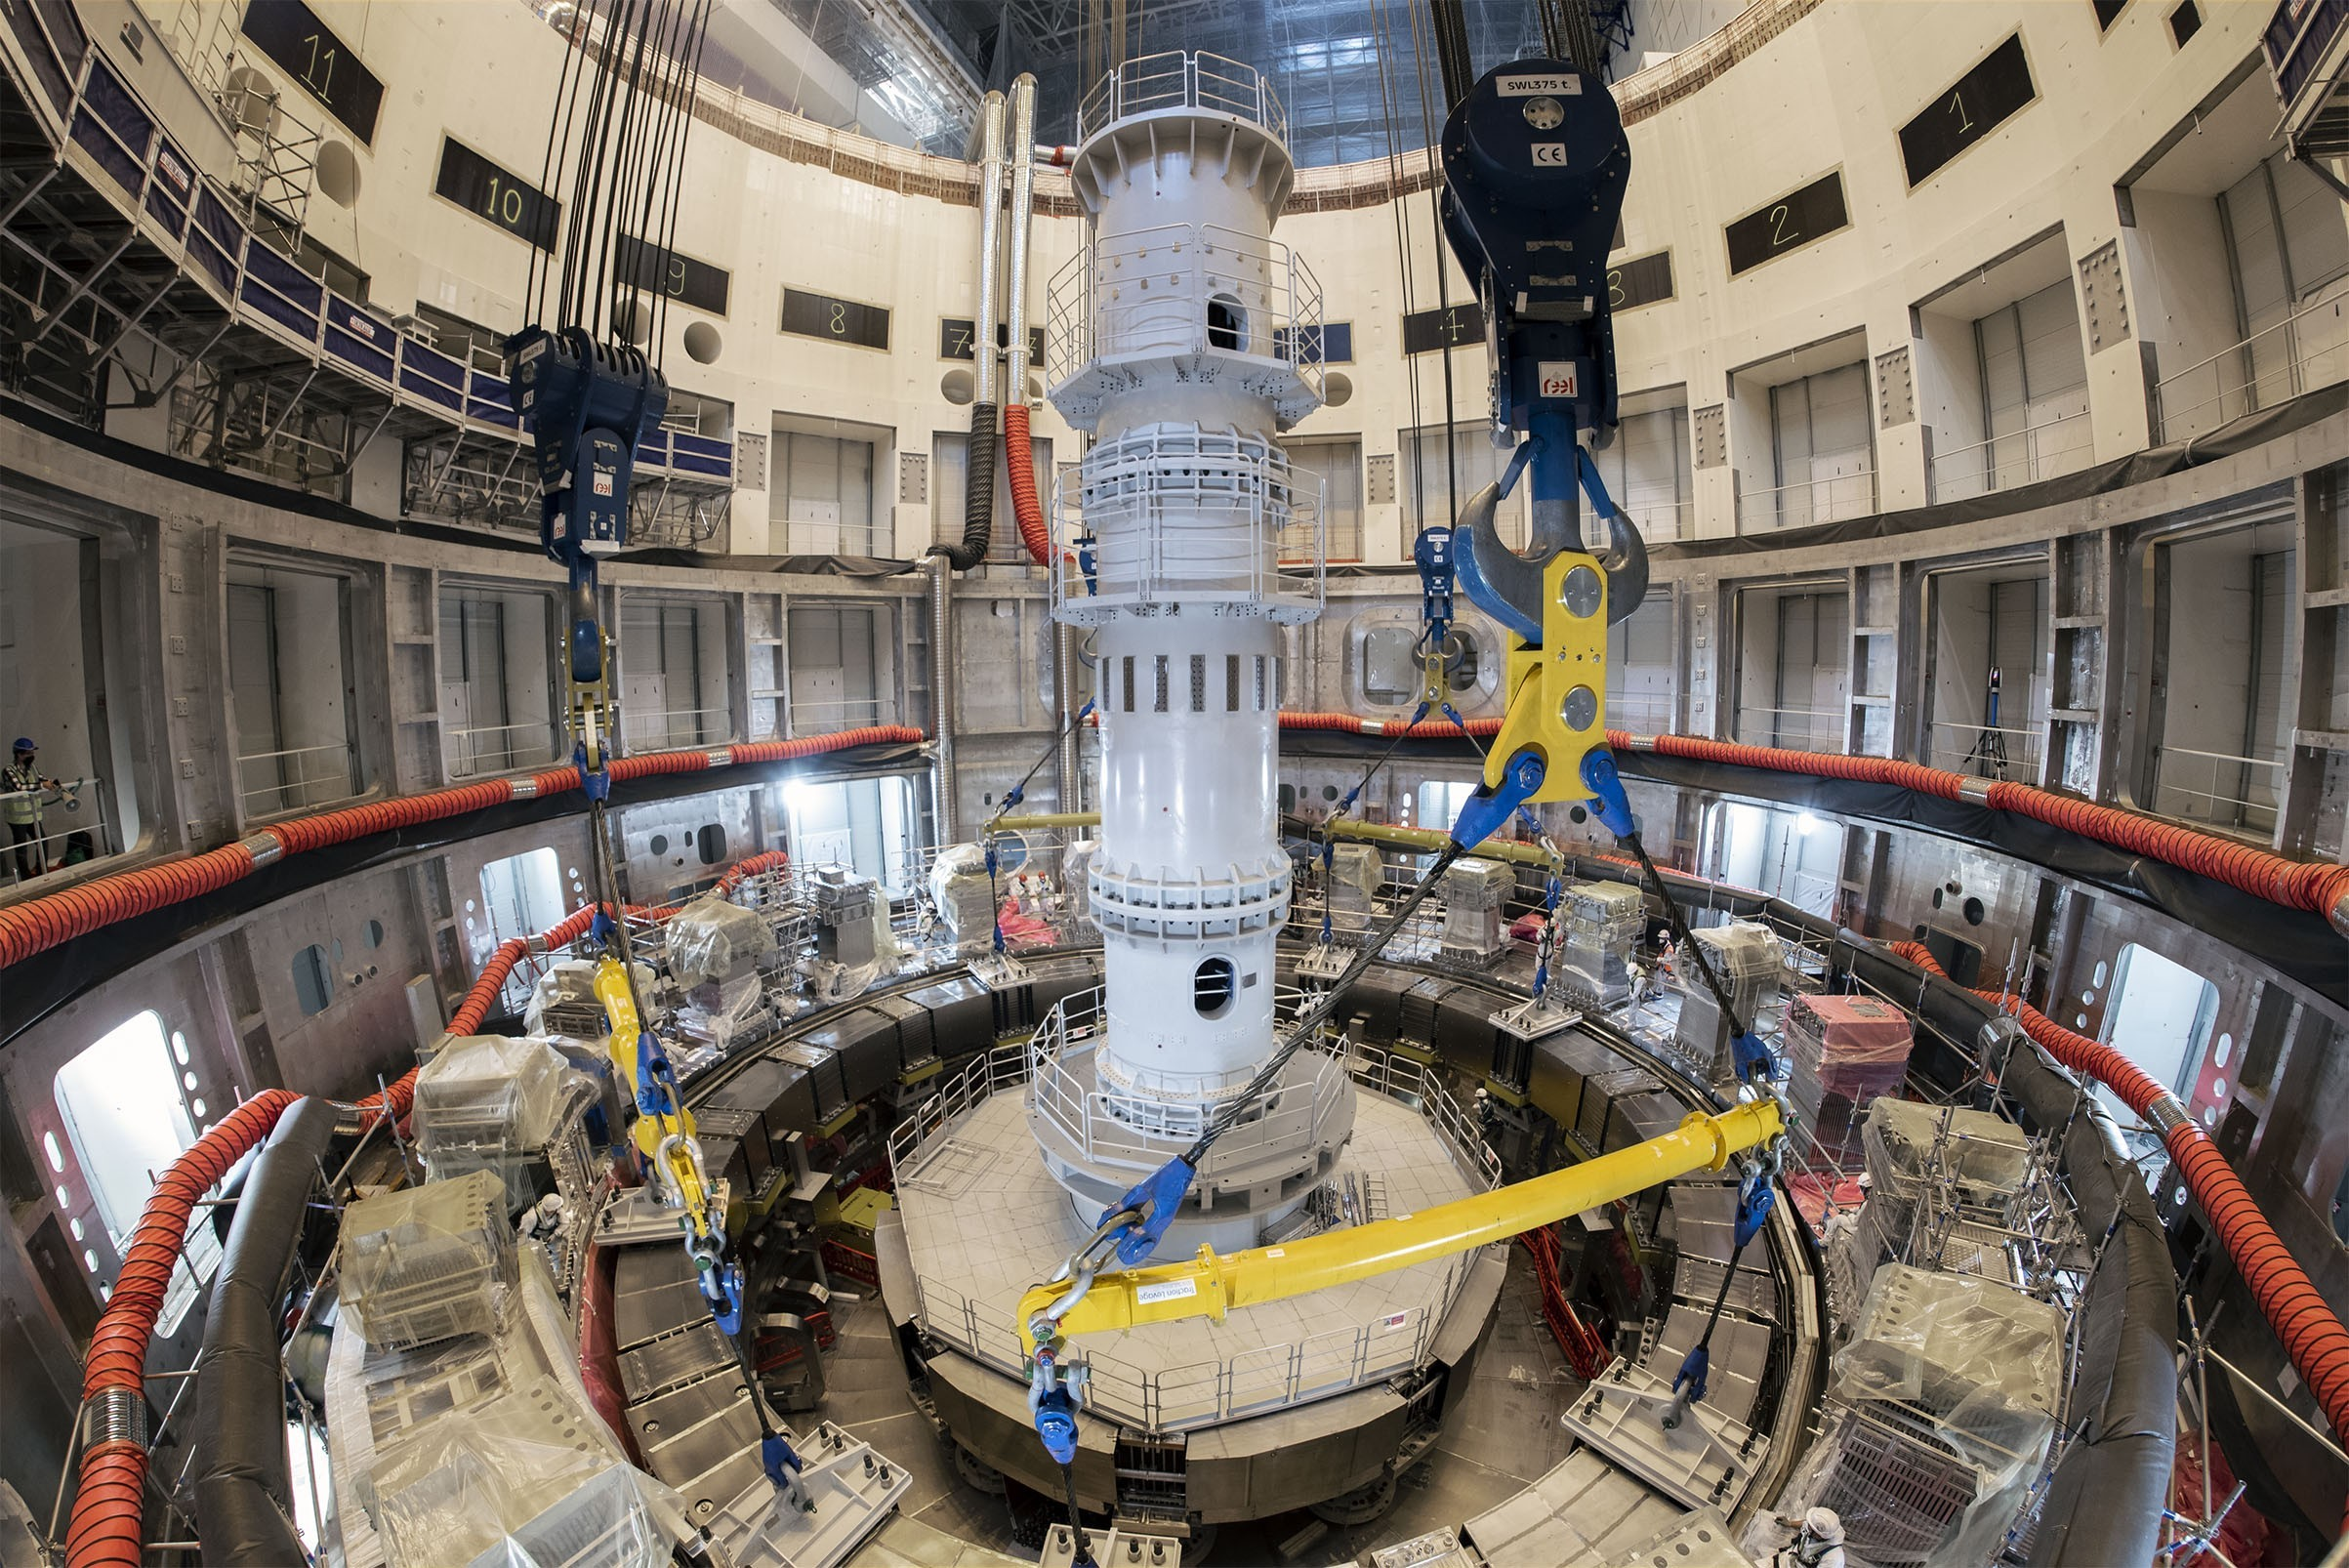 Image credit: Photo by EJF Riche - ITER construction site and ring coil PF5.